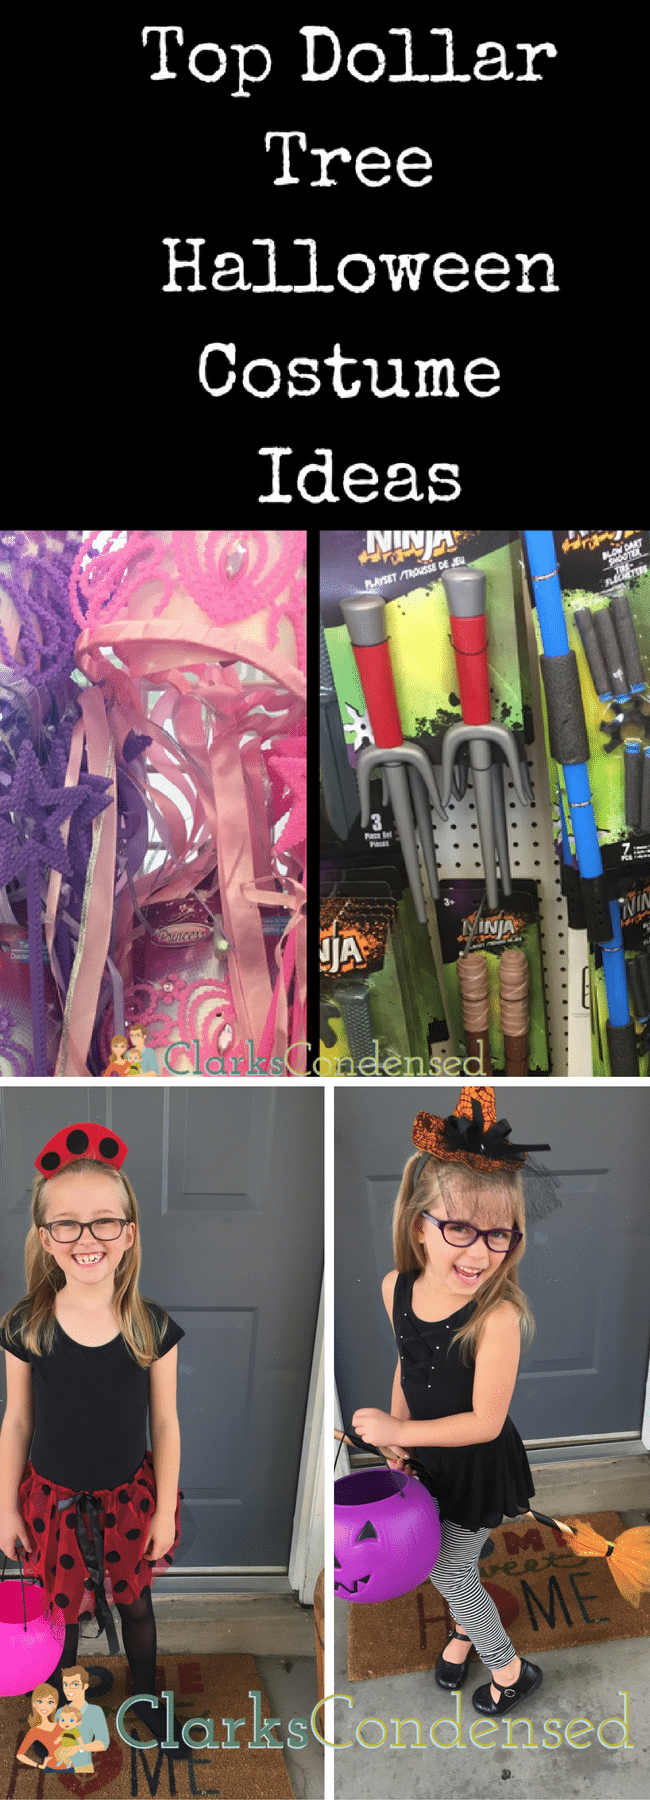 Dollar Tree Halloween Costumes / DIY Halloween Costume Ideas / Easy Halloween Costume Ideas / Halloween / #Halloween #costumeideas #costumesforkids